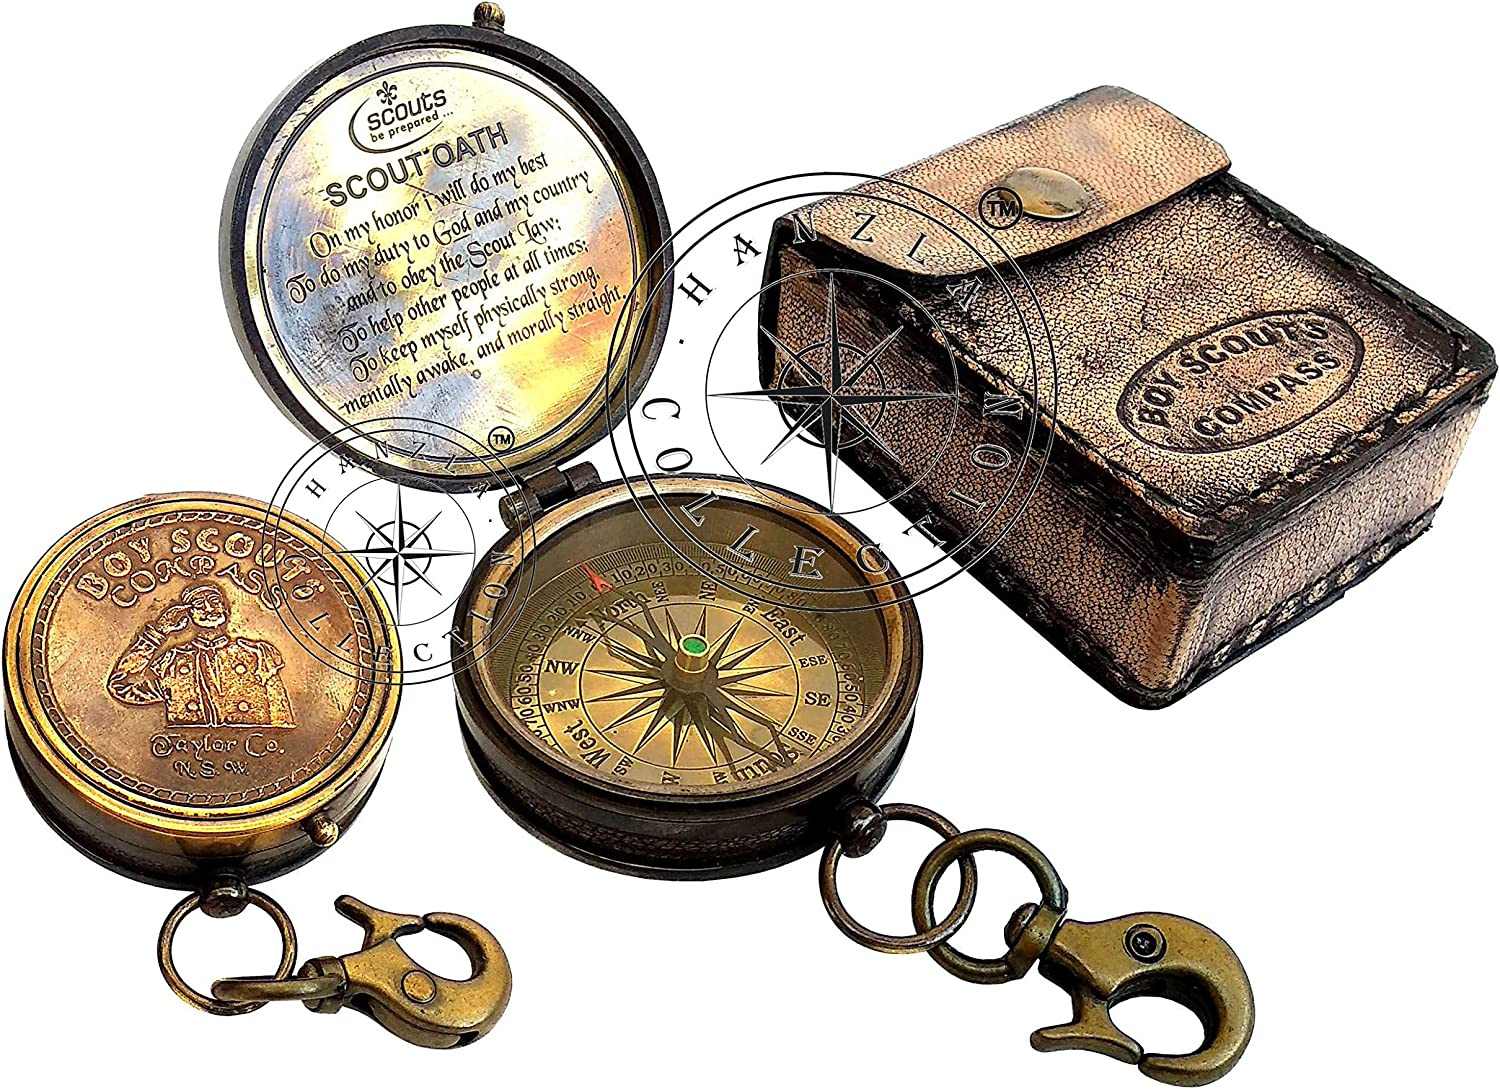 Hanzla Collection Charlotte Mall Antique Brass Limited price sale Compass Maritime Nautical Boy Sc